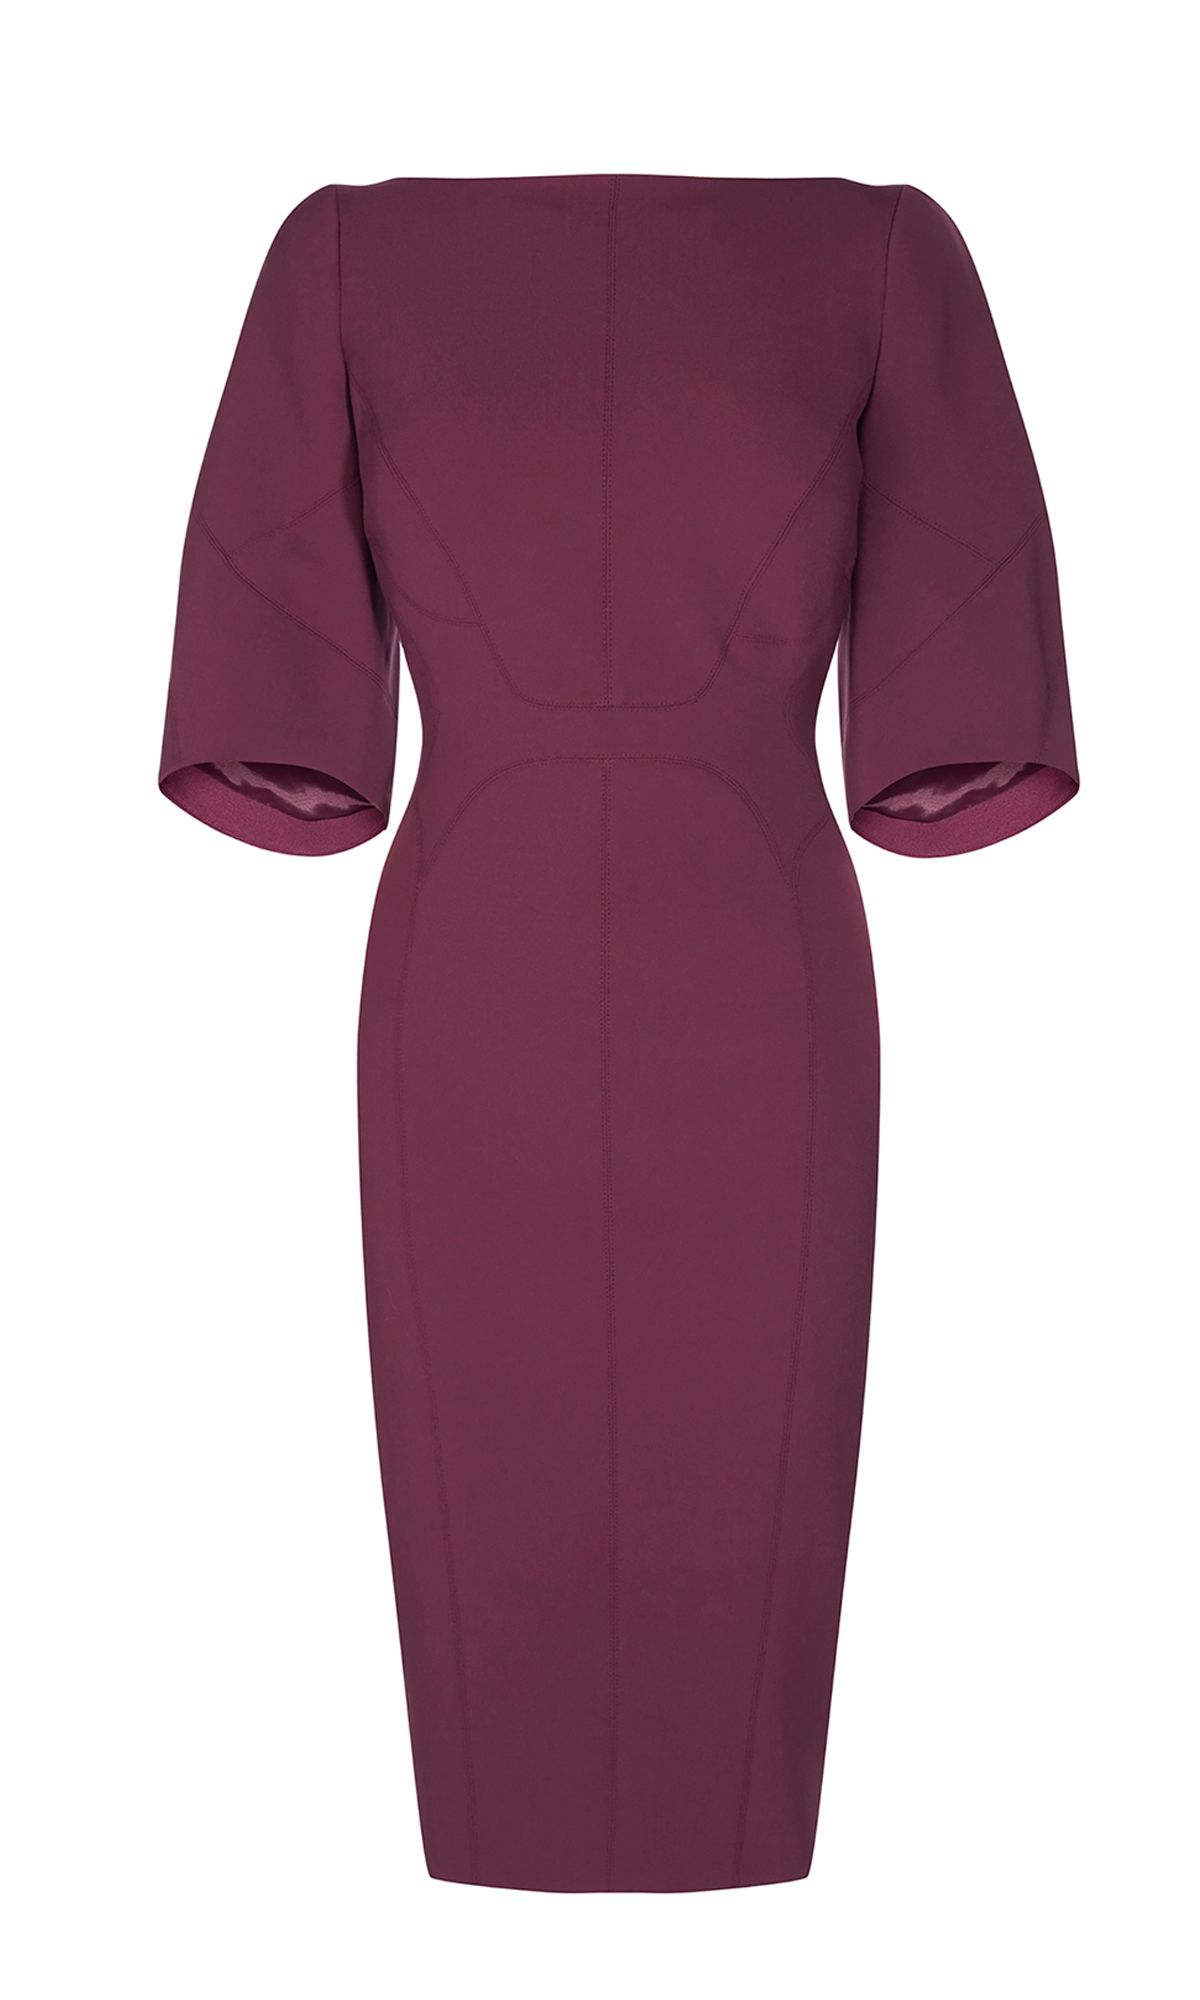 Karen Millen Puff Sleeve Pencil Dress, Aubergine